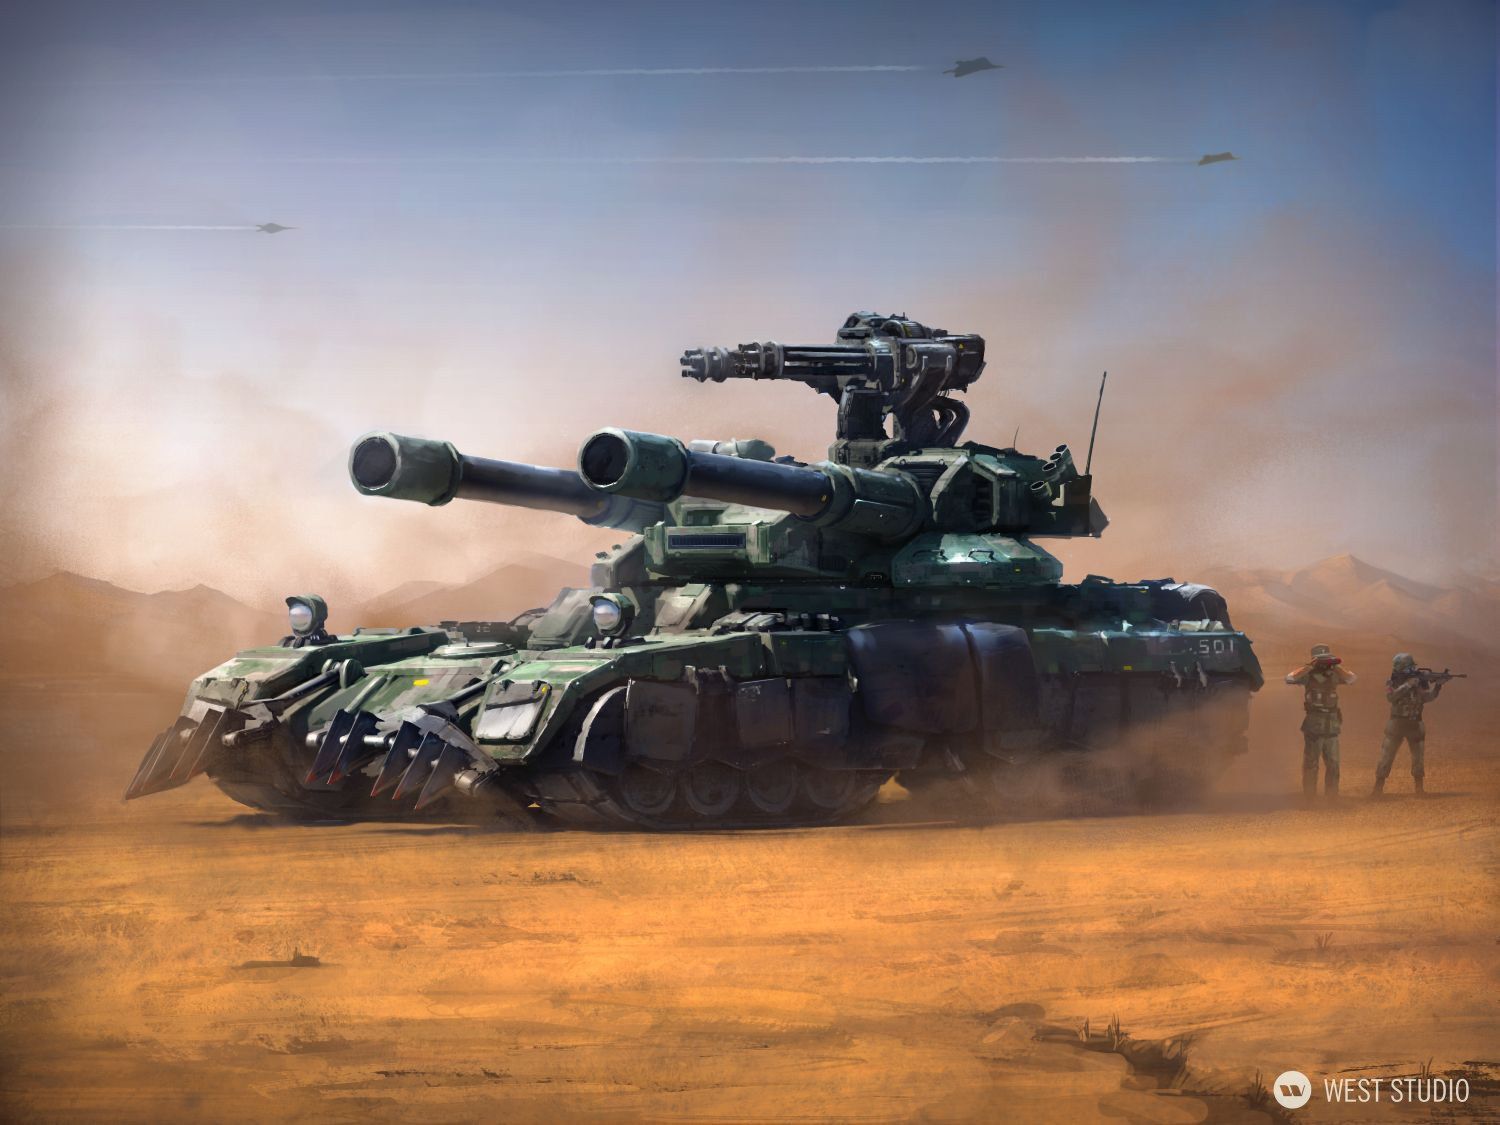 Military, Vehicles, Tanks, Vehicle Design, Concept Art, Command and Conquer, Key Art